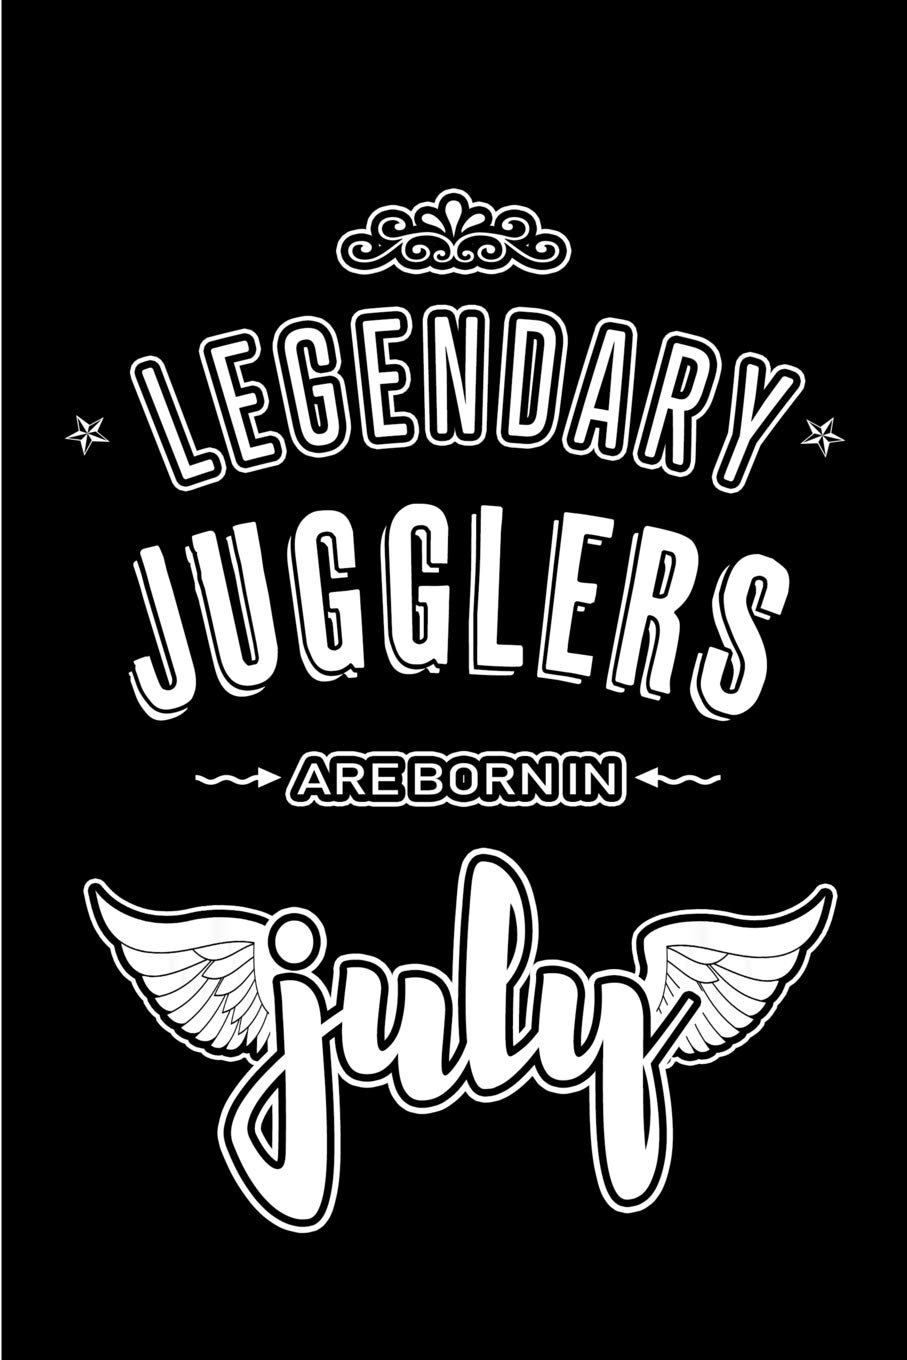 Legendary Jugglers are born in July: Blank Lined Juggler Journal Notebooks Diary as Appreciation Birthday Welcome Farewell Thank You Christmas Graduation gifts. ( Alternative to Birthday card )